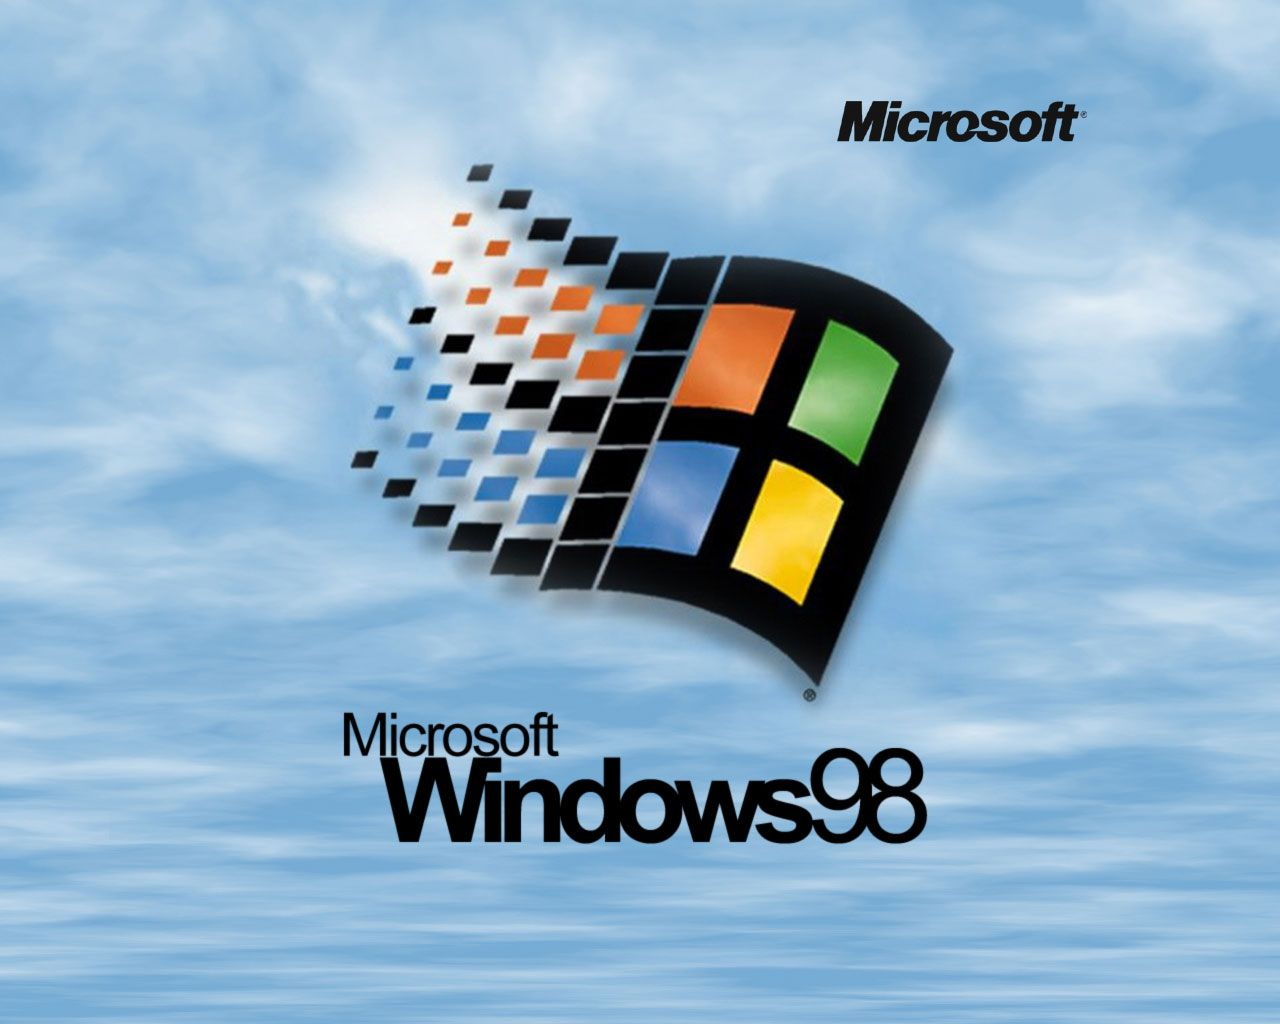 Microsoft Windows 98 90s Memories Computer Windows 98 Old Computers Windows 95